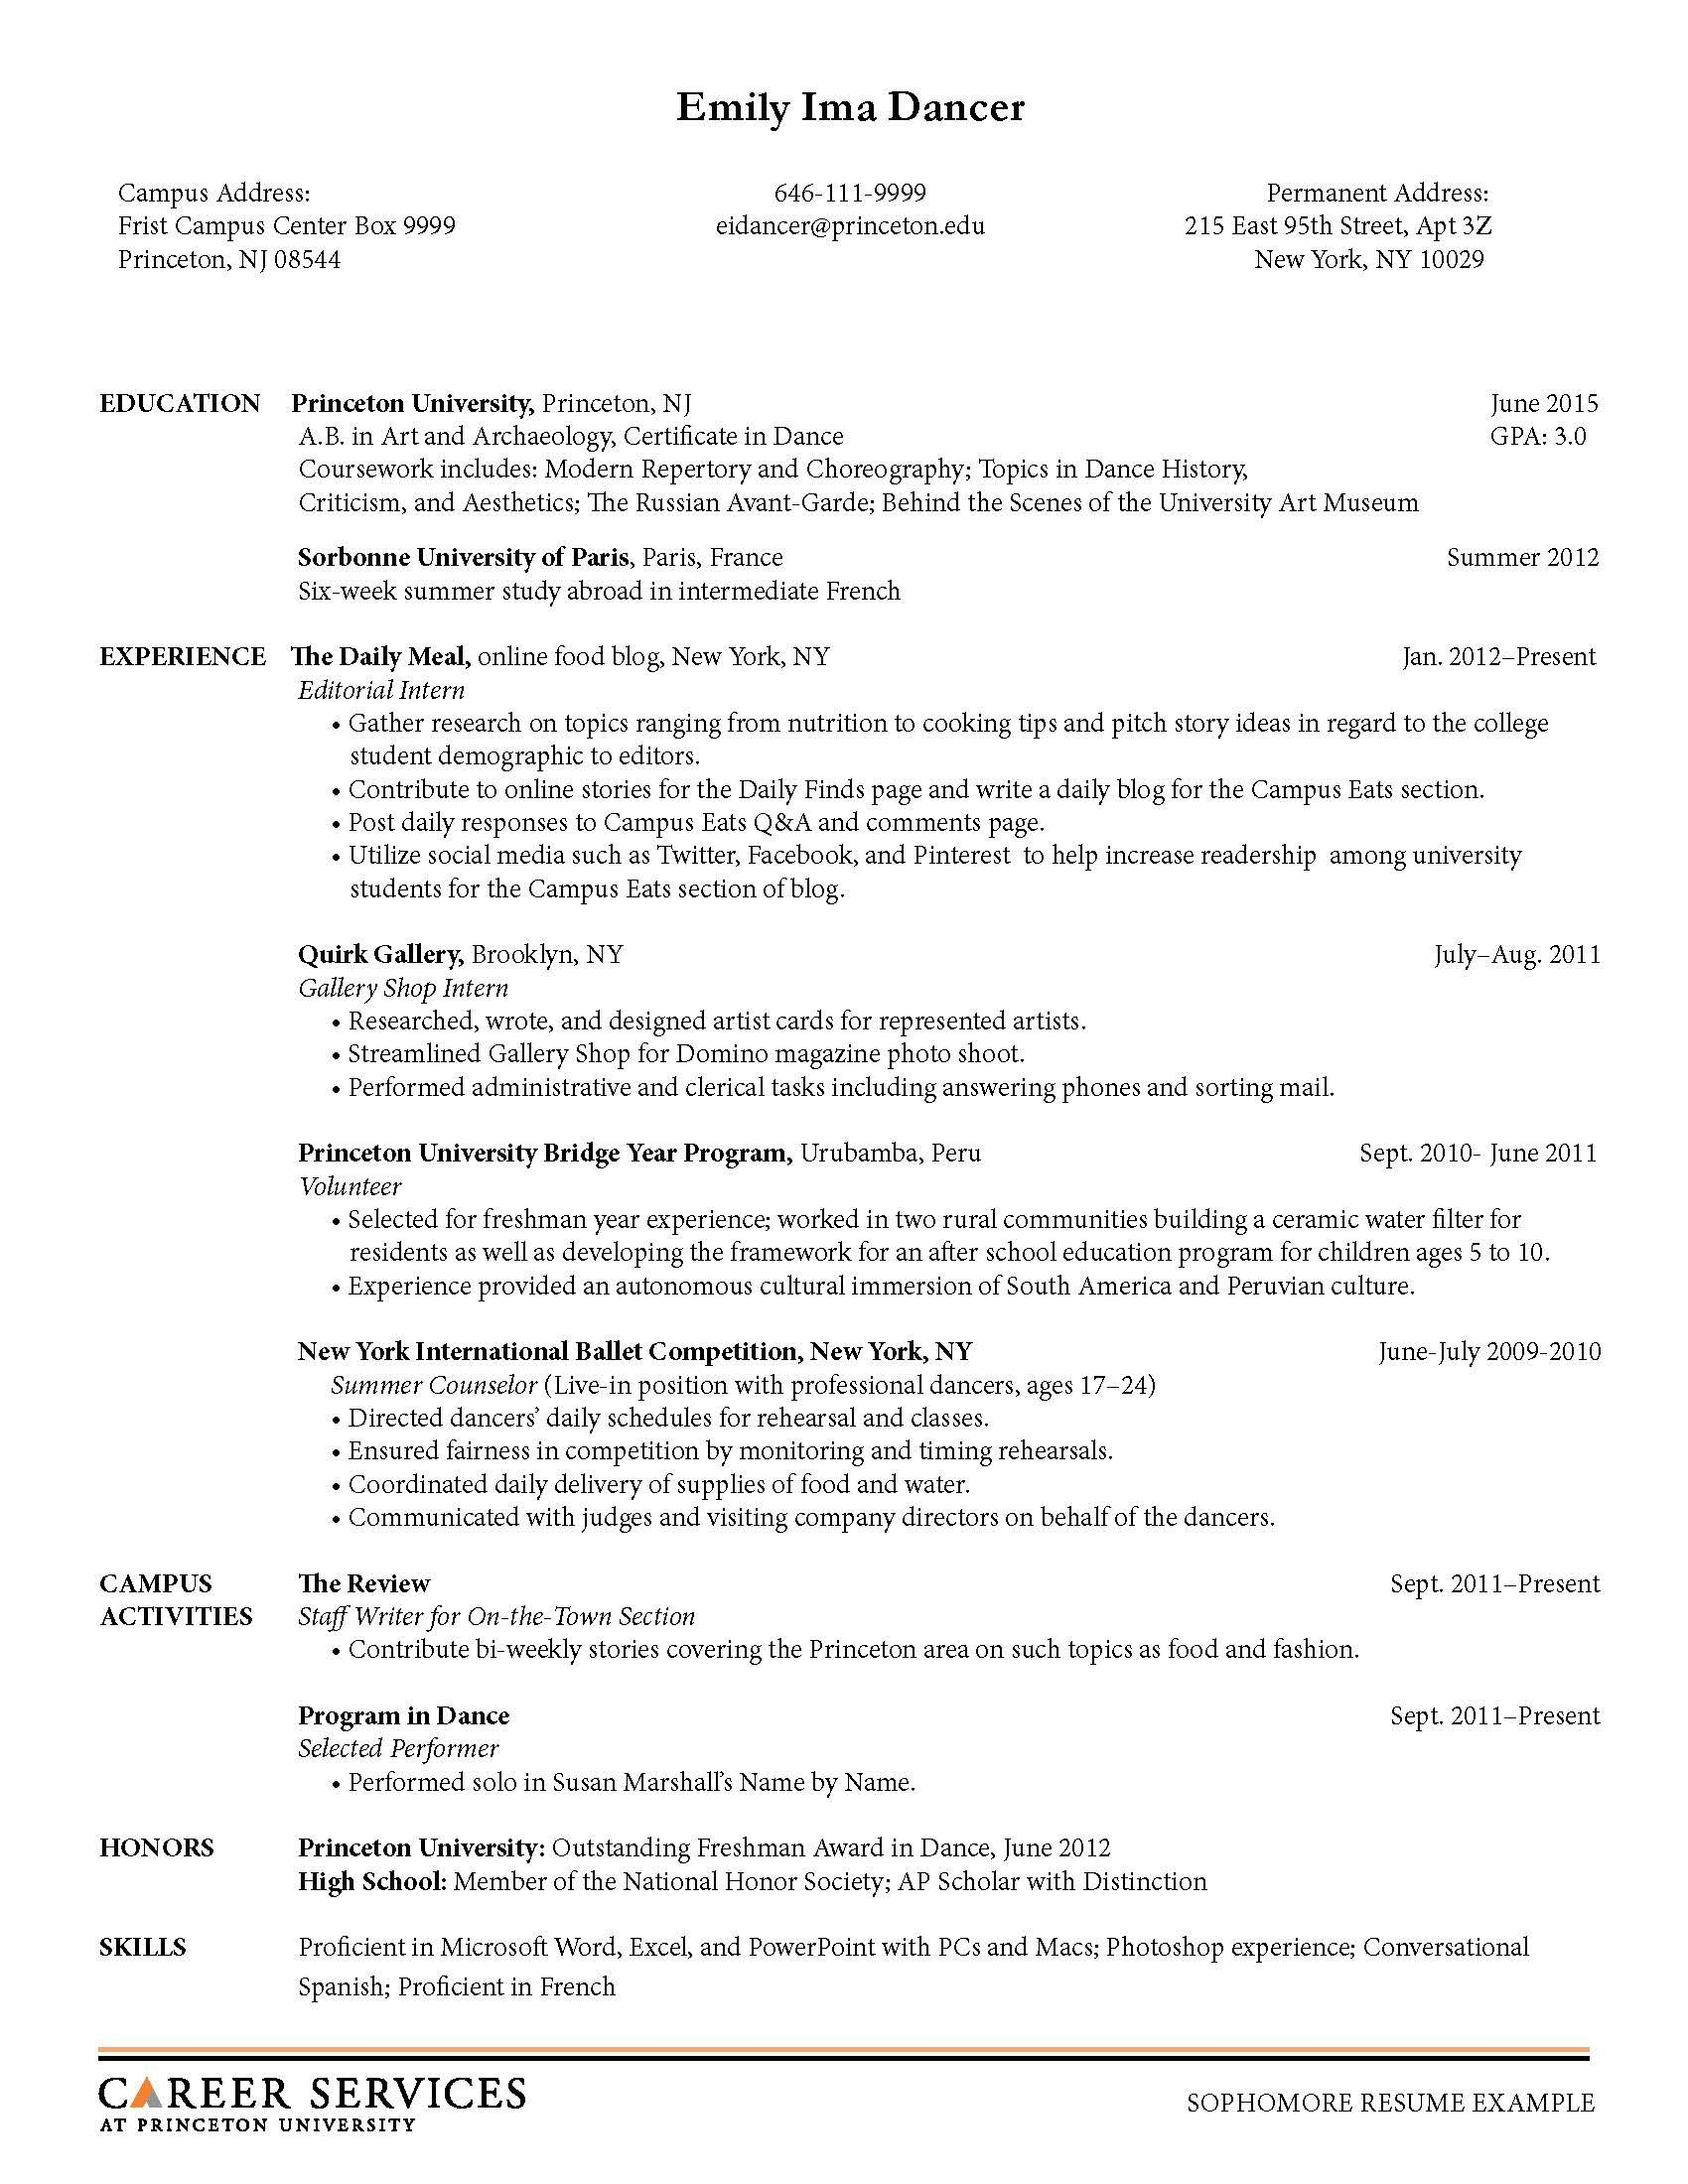 Opposenewapstandardsus  Unique Sample Resume Resume And Career On Pinterest With Excellent Medical Laboratory Technician Resume Besides Financial Analyst Resumes Furthermore Graphic Design Skills Resume With Breathtaking Computer Skill Resume Also General Objective Resume Examples In Addition Application Resume And Styles Of Resumes As Well As Great Customer Service Resumes Additionally References On Resume Examples From Pinterestcom With Opposenewapstandardsus  Excellent Sample Resume Resume And Career On Pinterest With Breathtaking Medical Laboratory Technician Resume Besides Financial Analyst Resumes Furthermore Graphic Design Skills Resume And Unique Computer Skill Resume Also General Objective Resume Examples In Addition Application Resume From Pinterestcom